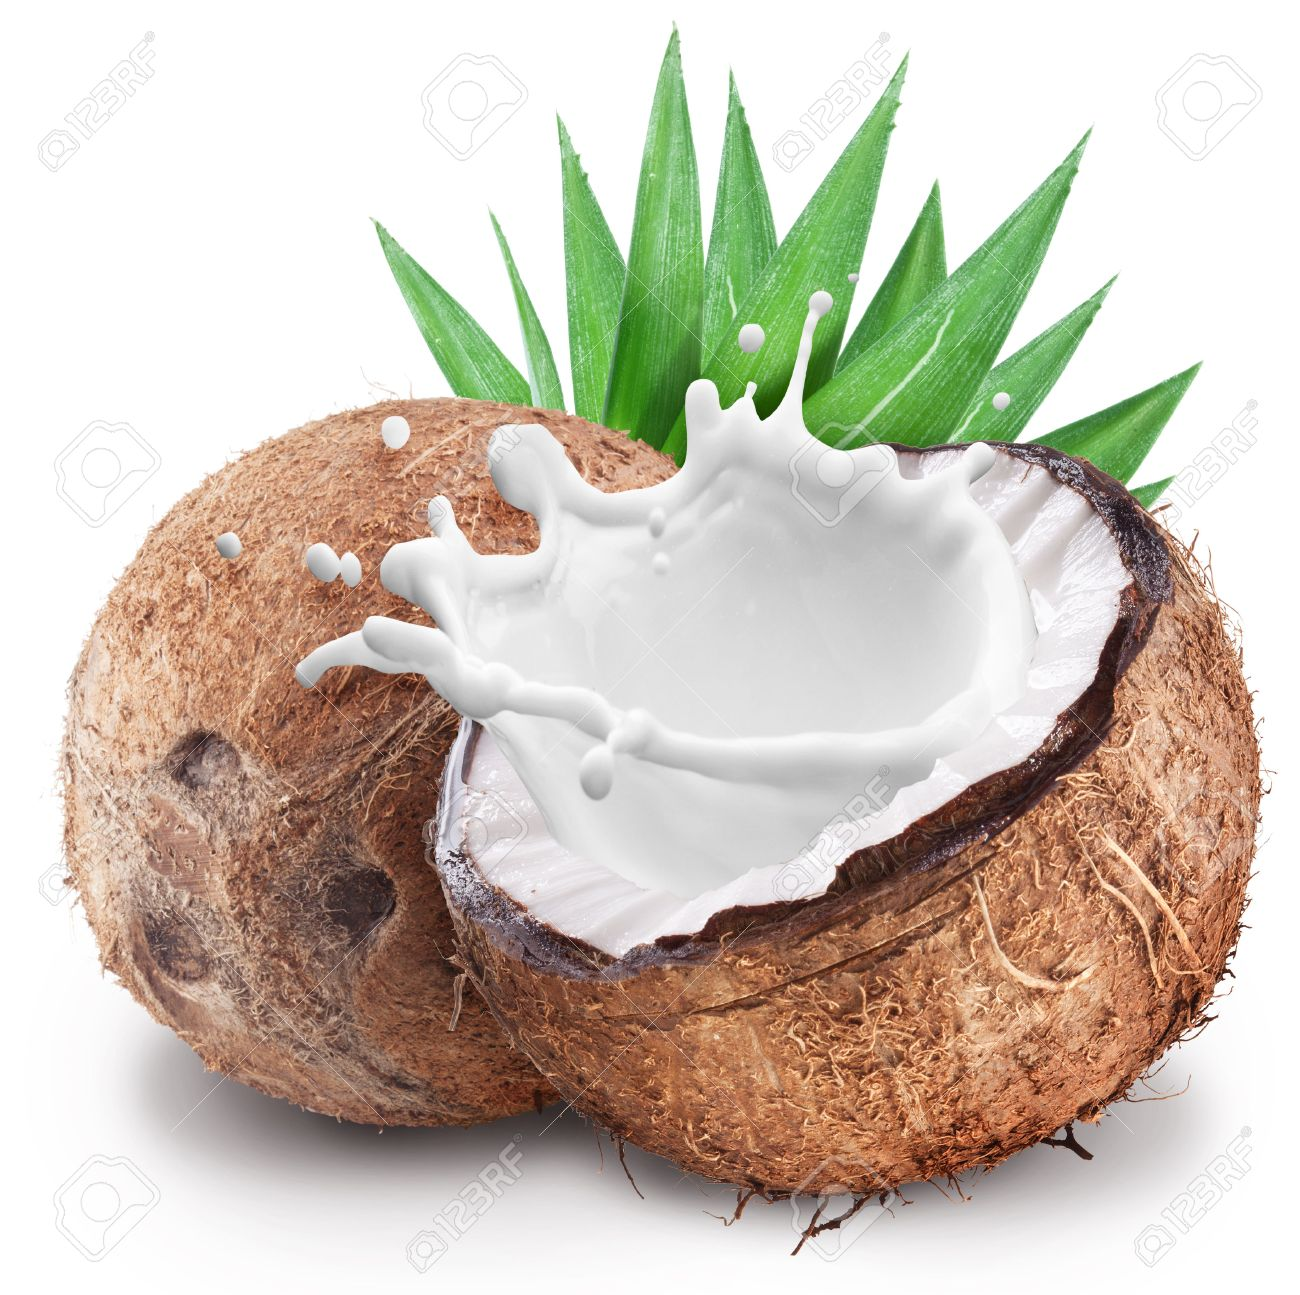 Coconut with milk splash inside. File contains clipping paths. Standard-Bild - 46556652